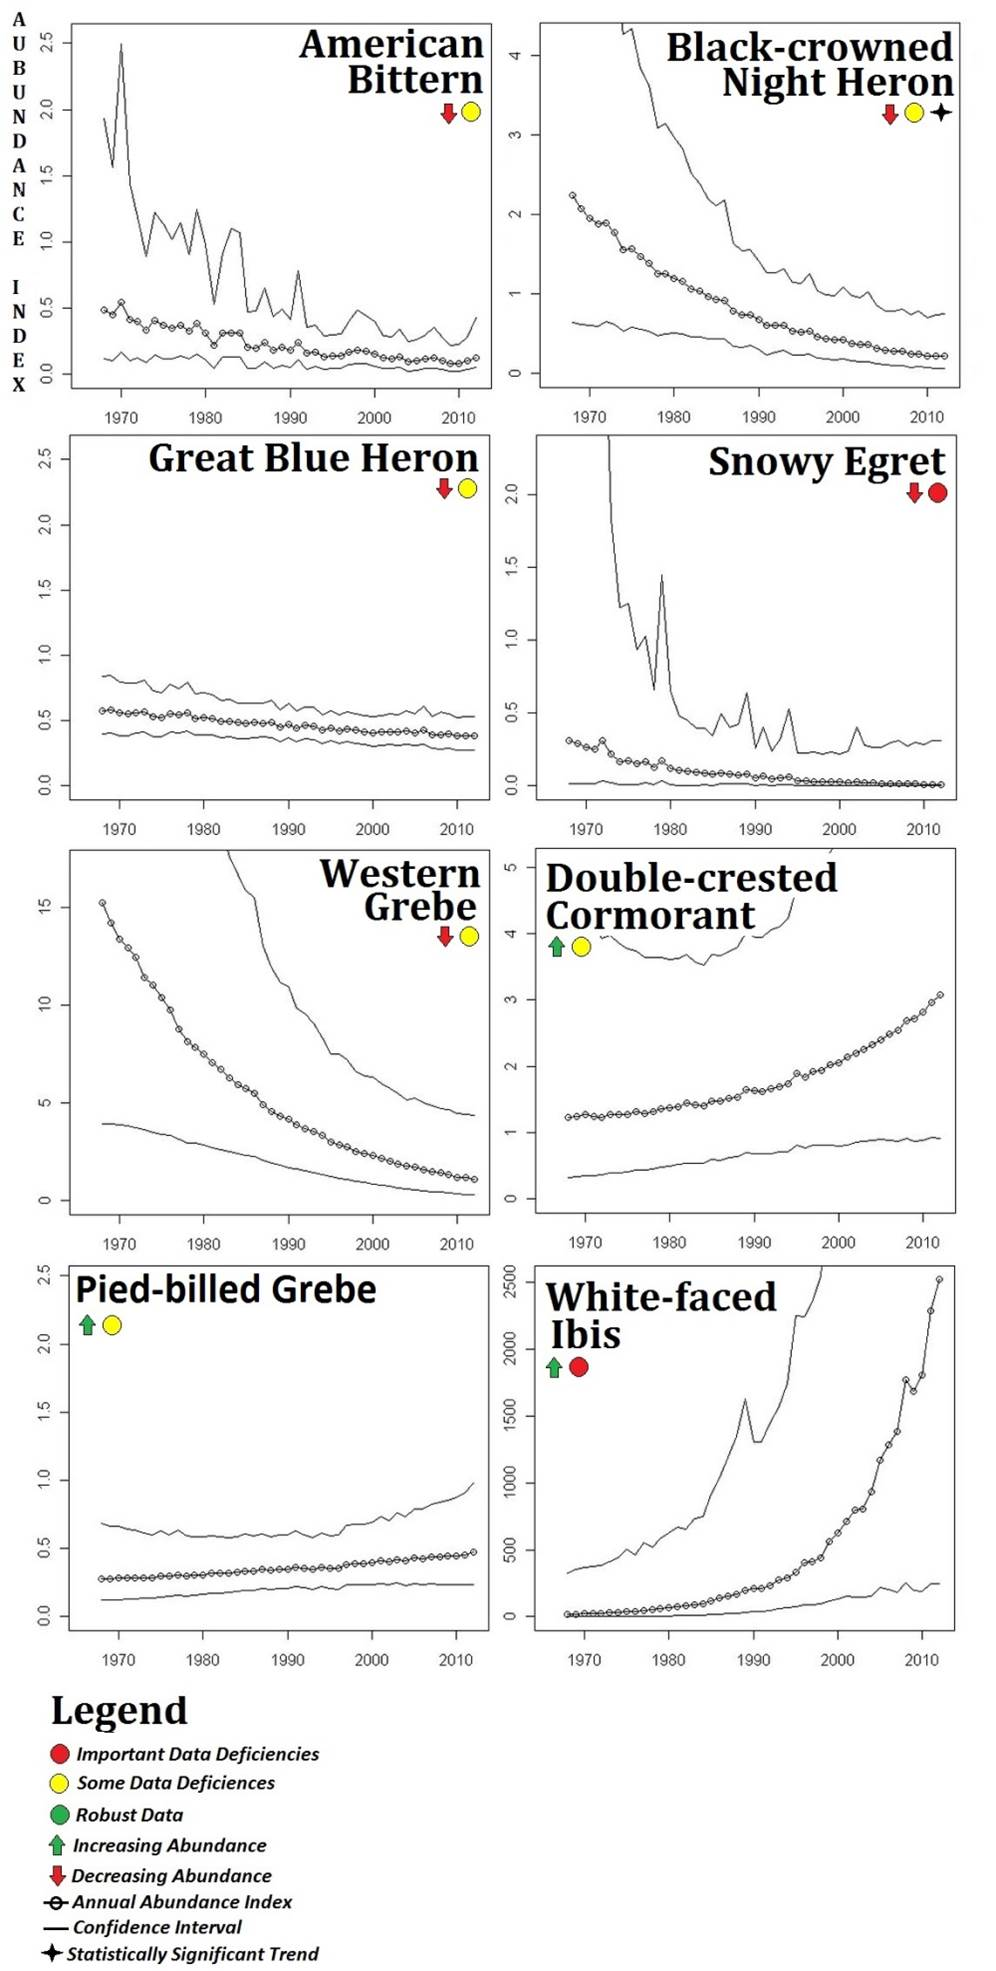 Figure 16. North American Breeding Bird Survey (BBS) data for statewide abundance trends (1966-2012).The BBS data show eight wading bird species exhibiting clear trends over time. The black-crowned night heron (Nycticorax nycticorax) has shown a statistically significant decline. No species has shown a statistically significant abundance increase. Data: USGS 2014